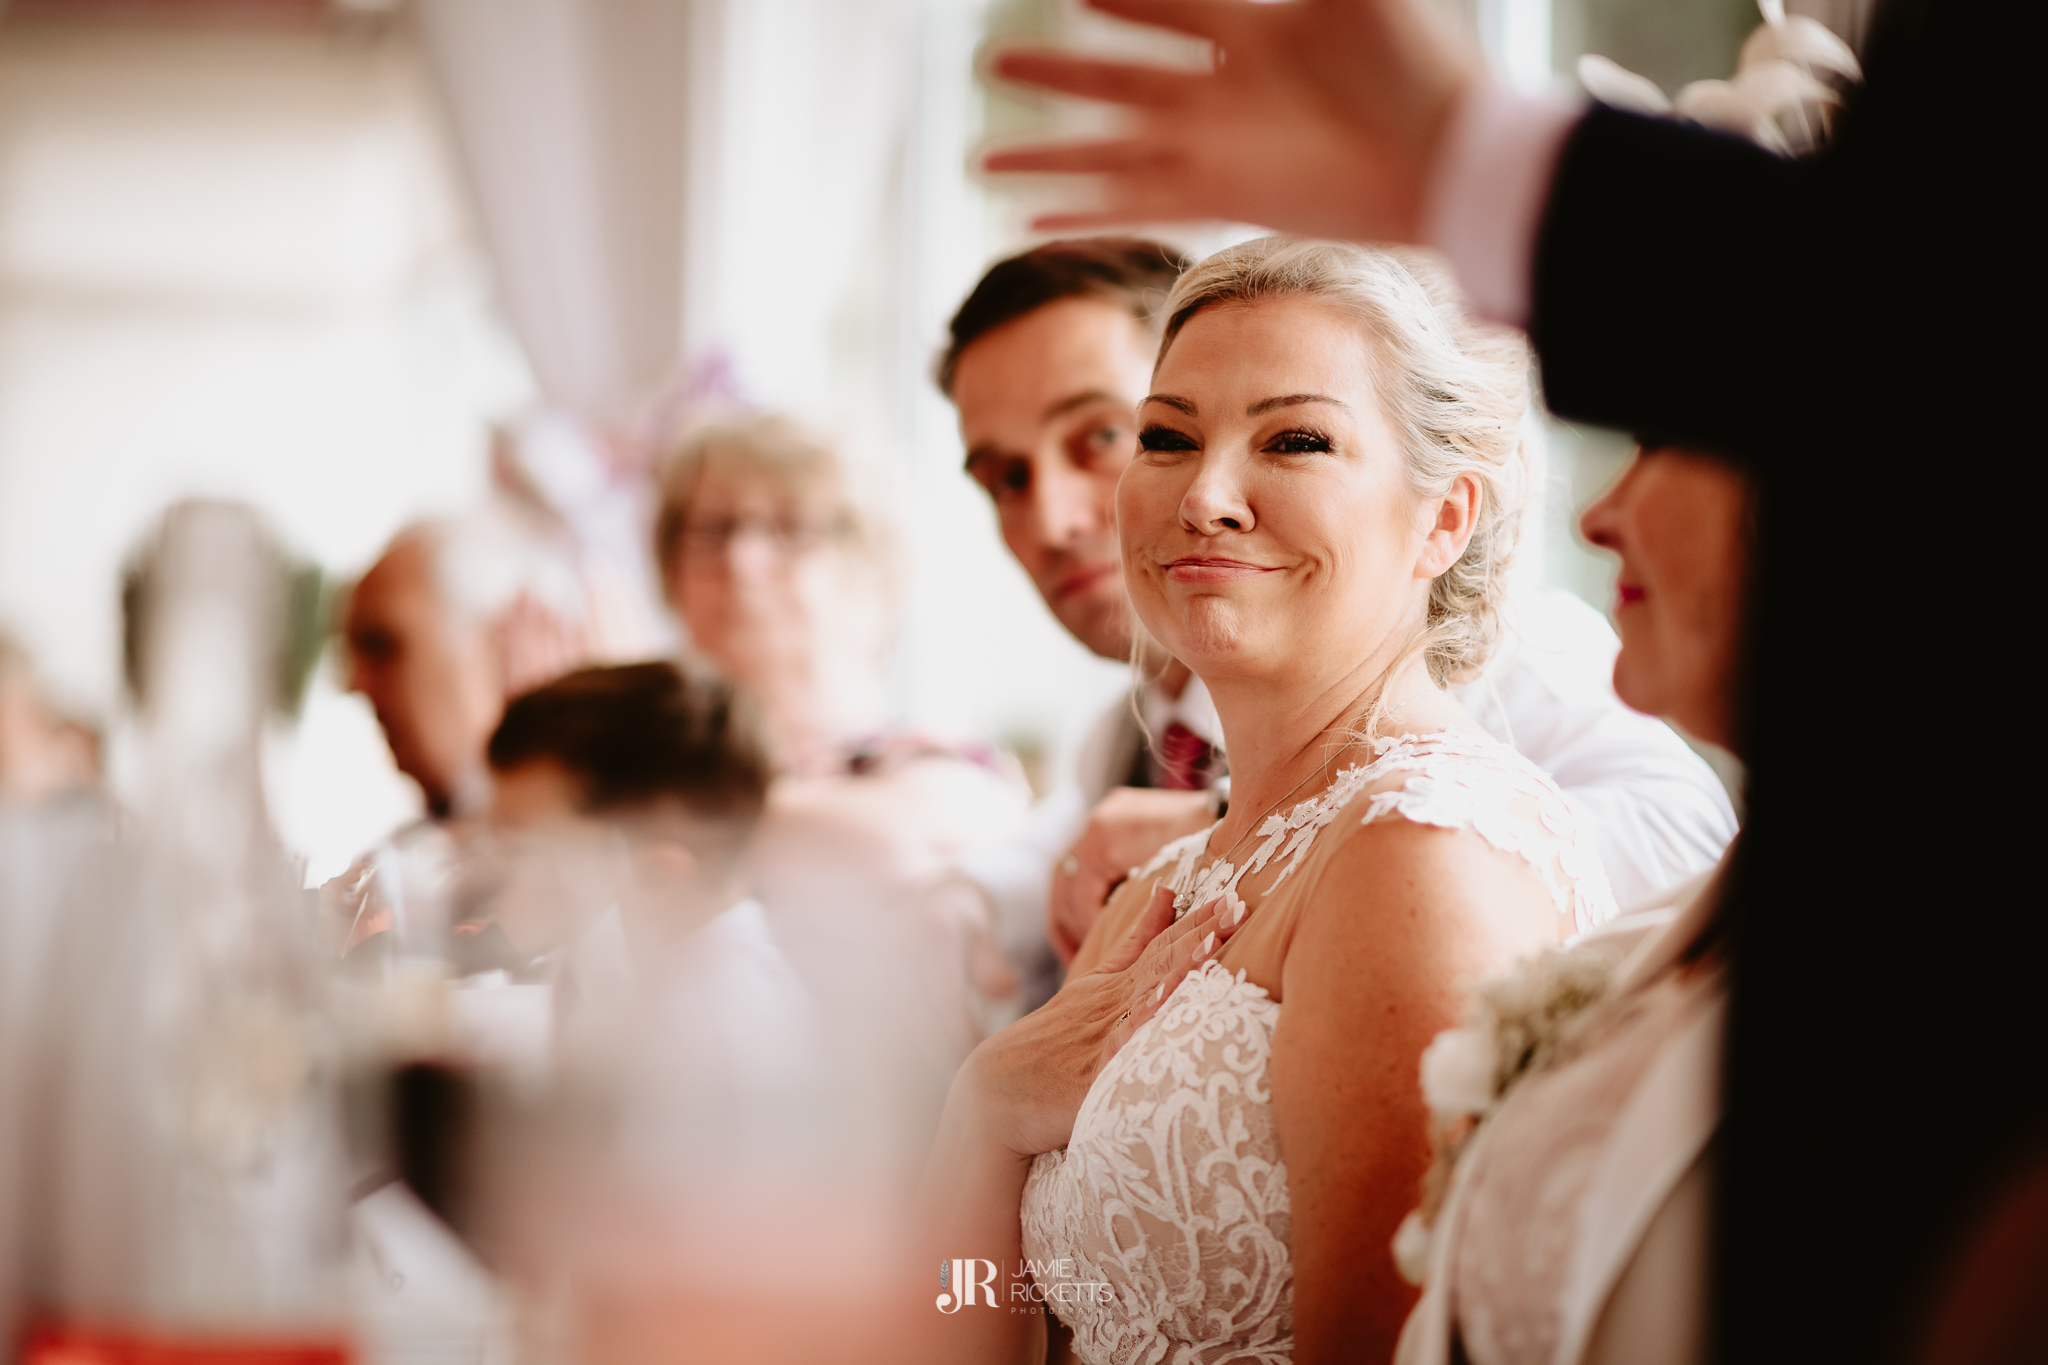 Wroxeter-Hotel-Wedding-Photography-In-Shropshire-By-Shropshire-Wedding-Photographer-Jamie-Ricketts-151.JPG